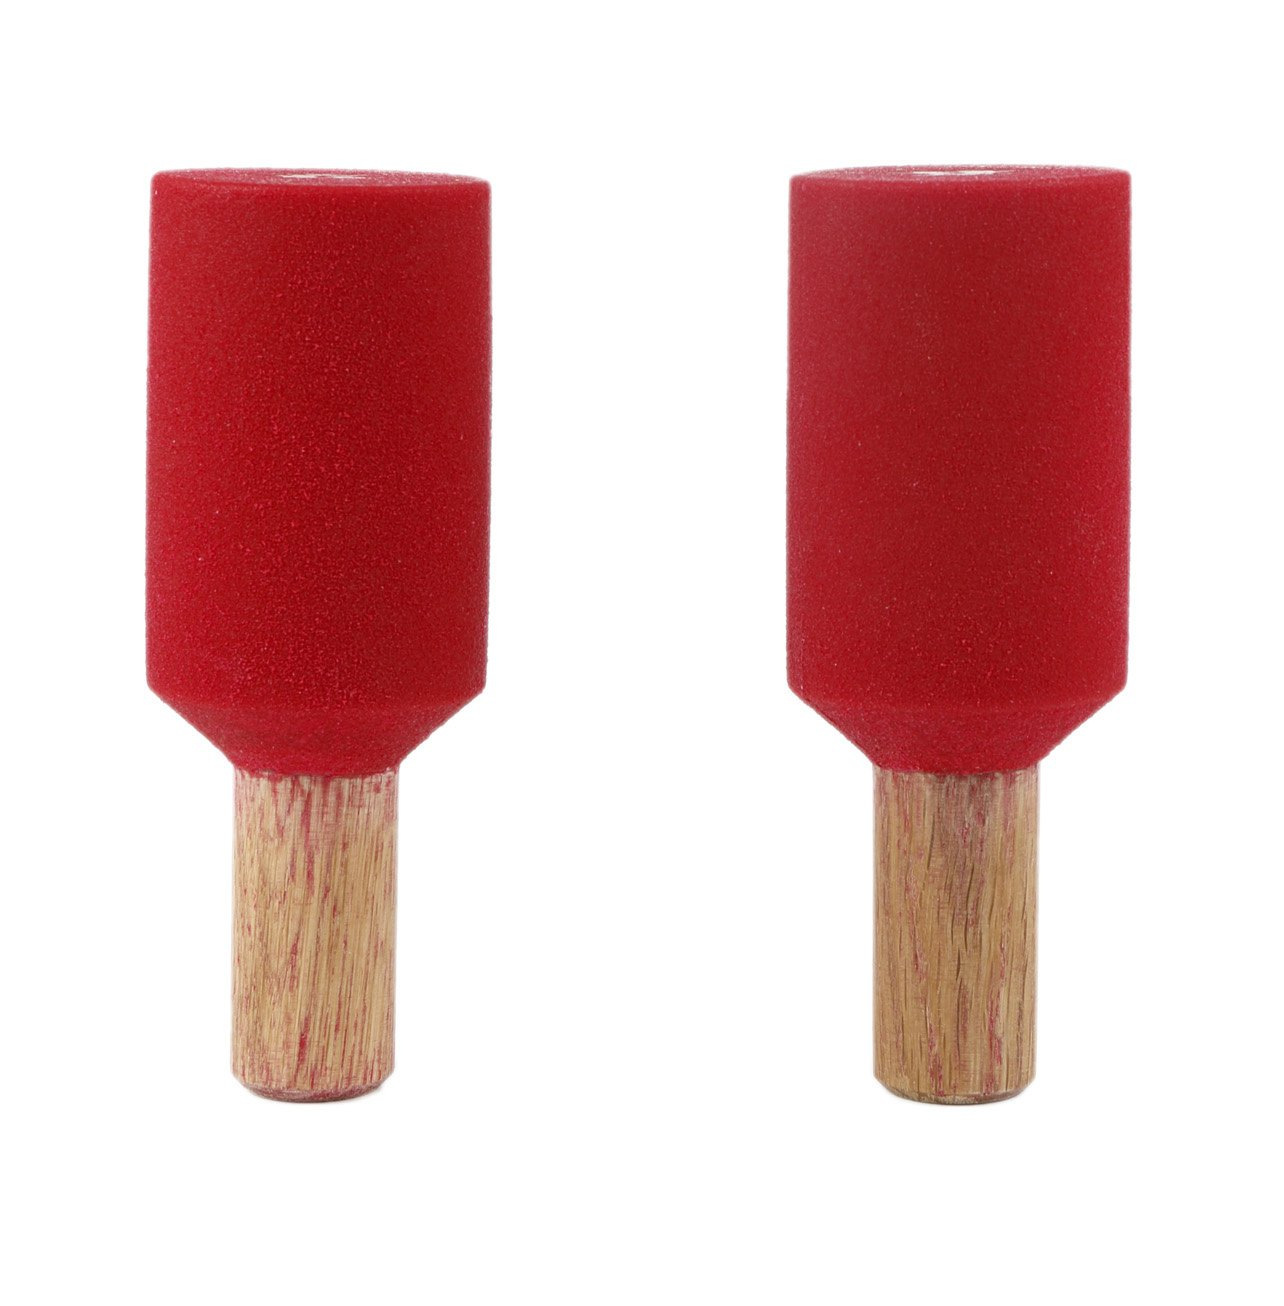 2.5'' Peg Board Pipes (Set Of 2)   Climbing Holds   Red